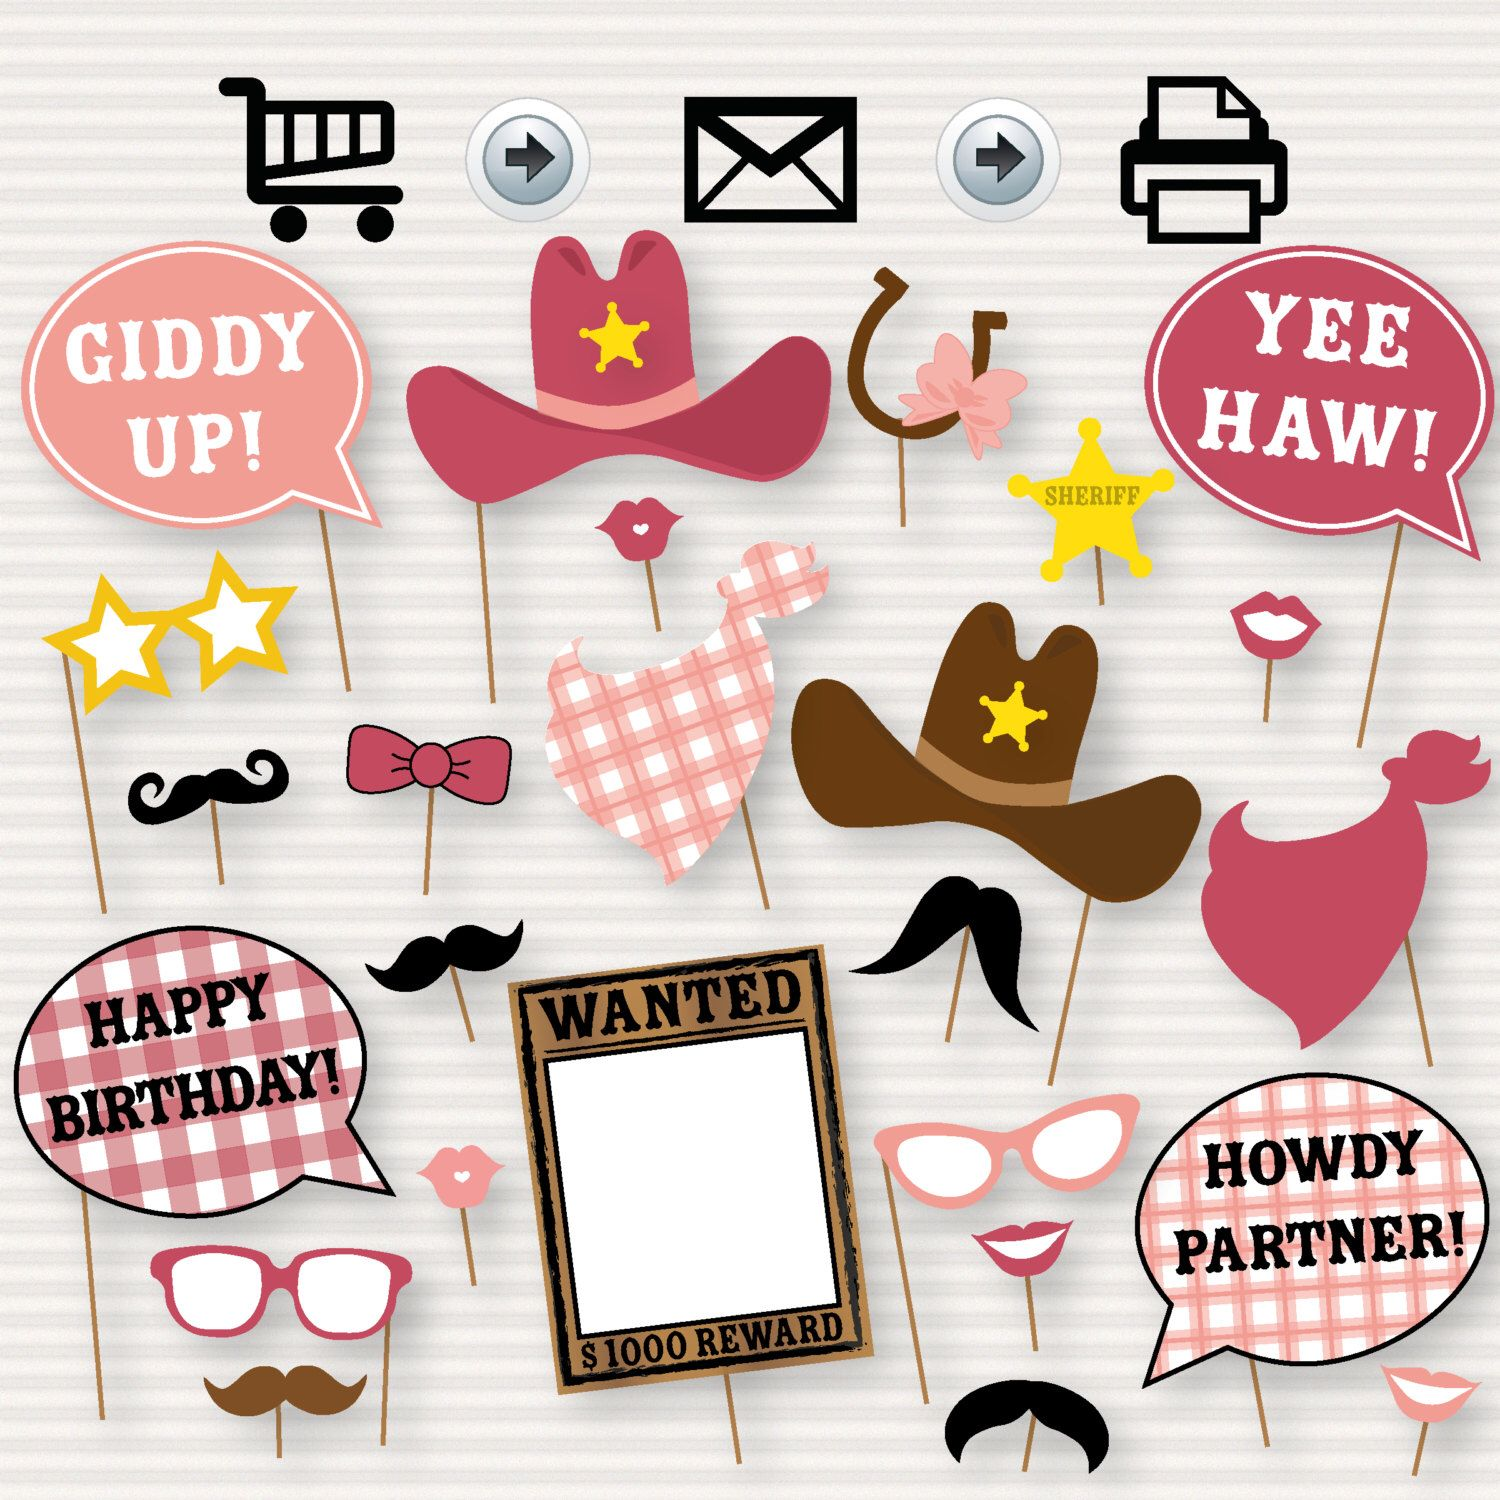 Cowgirl Photo Booth Printable Party Props - Western party, cowgirl, rodeo Photo Booth Props, Shabby Chic, Wanted Printable- INSTANT DOWNLOAD by SurpriseINC on Etsy https://www.etsy.com/listing/399230843/cowgirl-photo-booth-printable-party